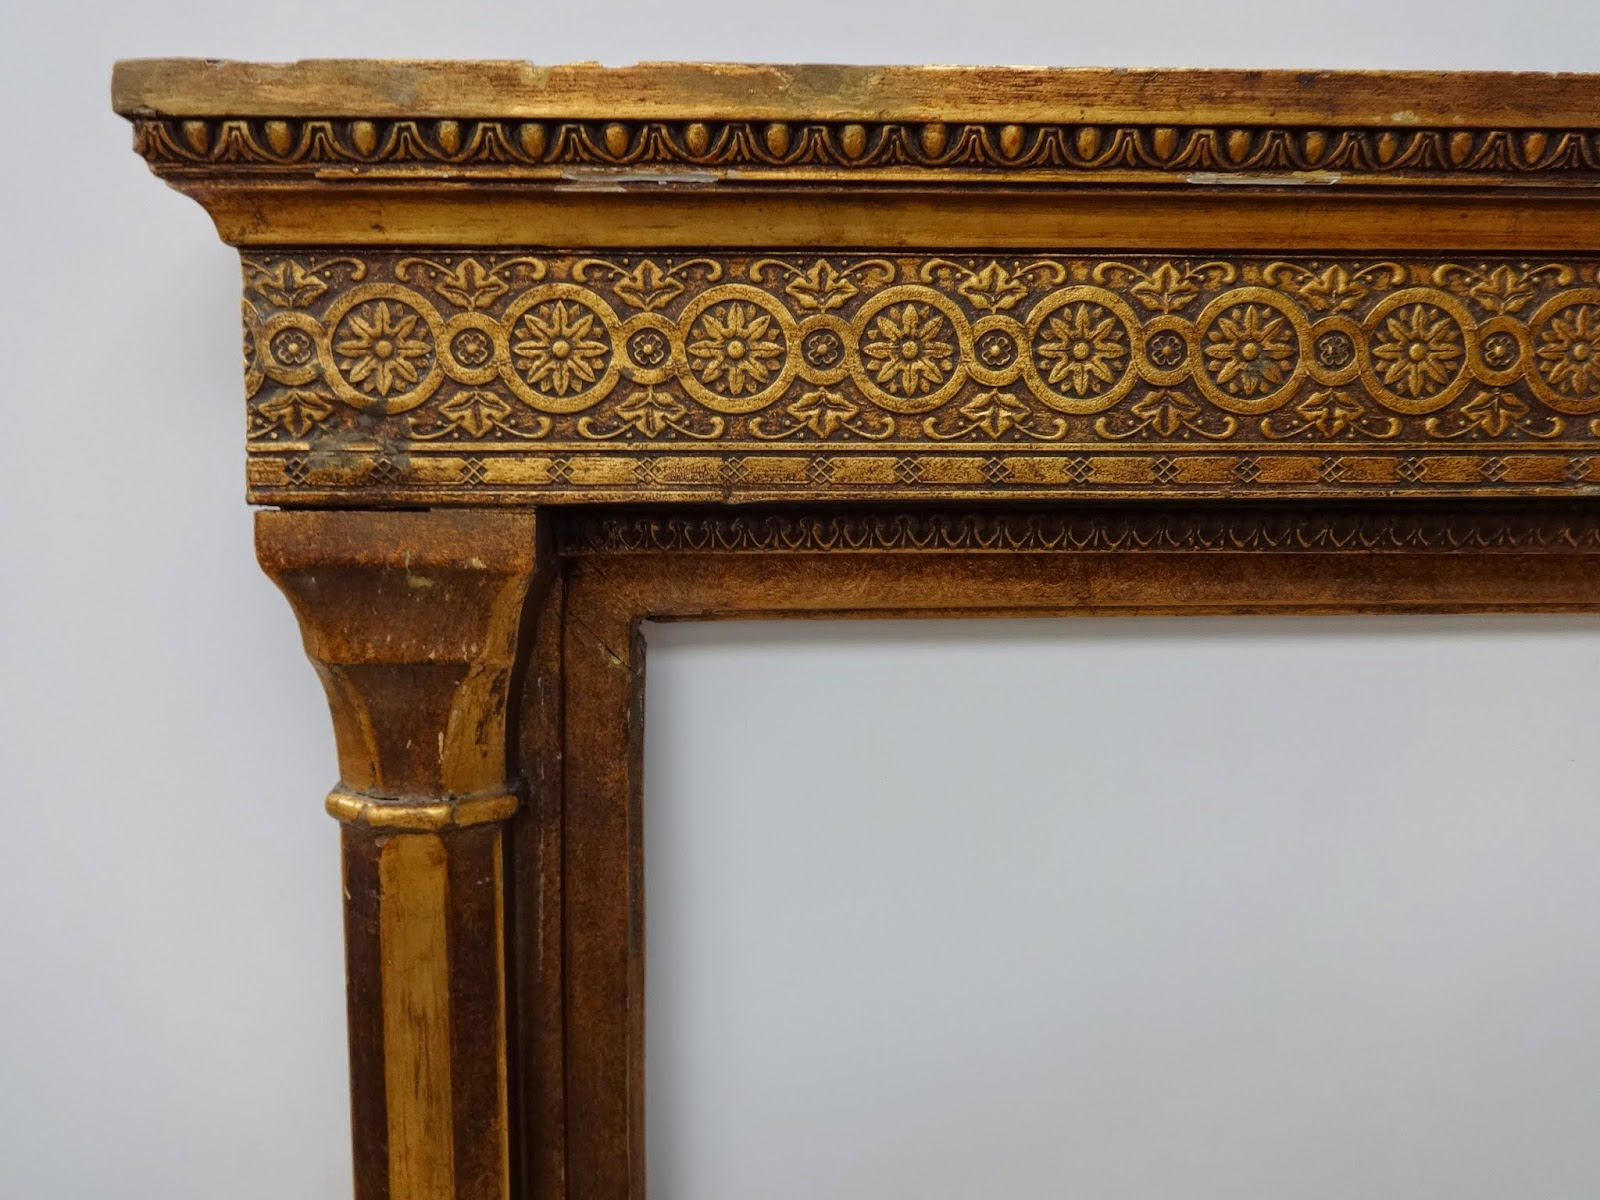 Antique Frame Sale: Large Tabernacle Frame